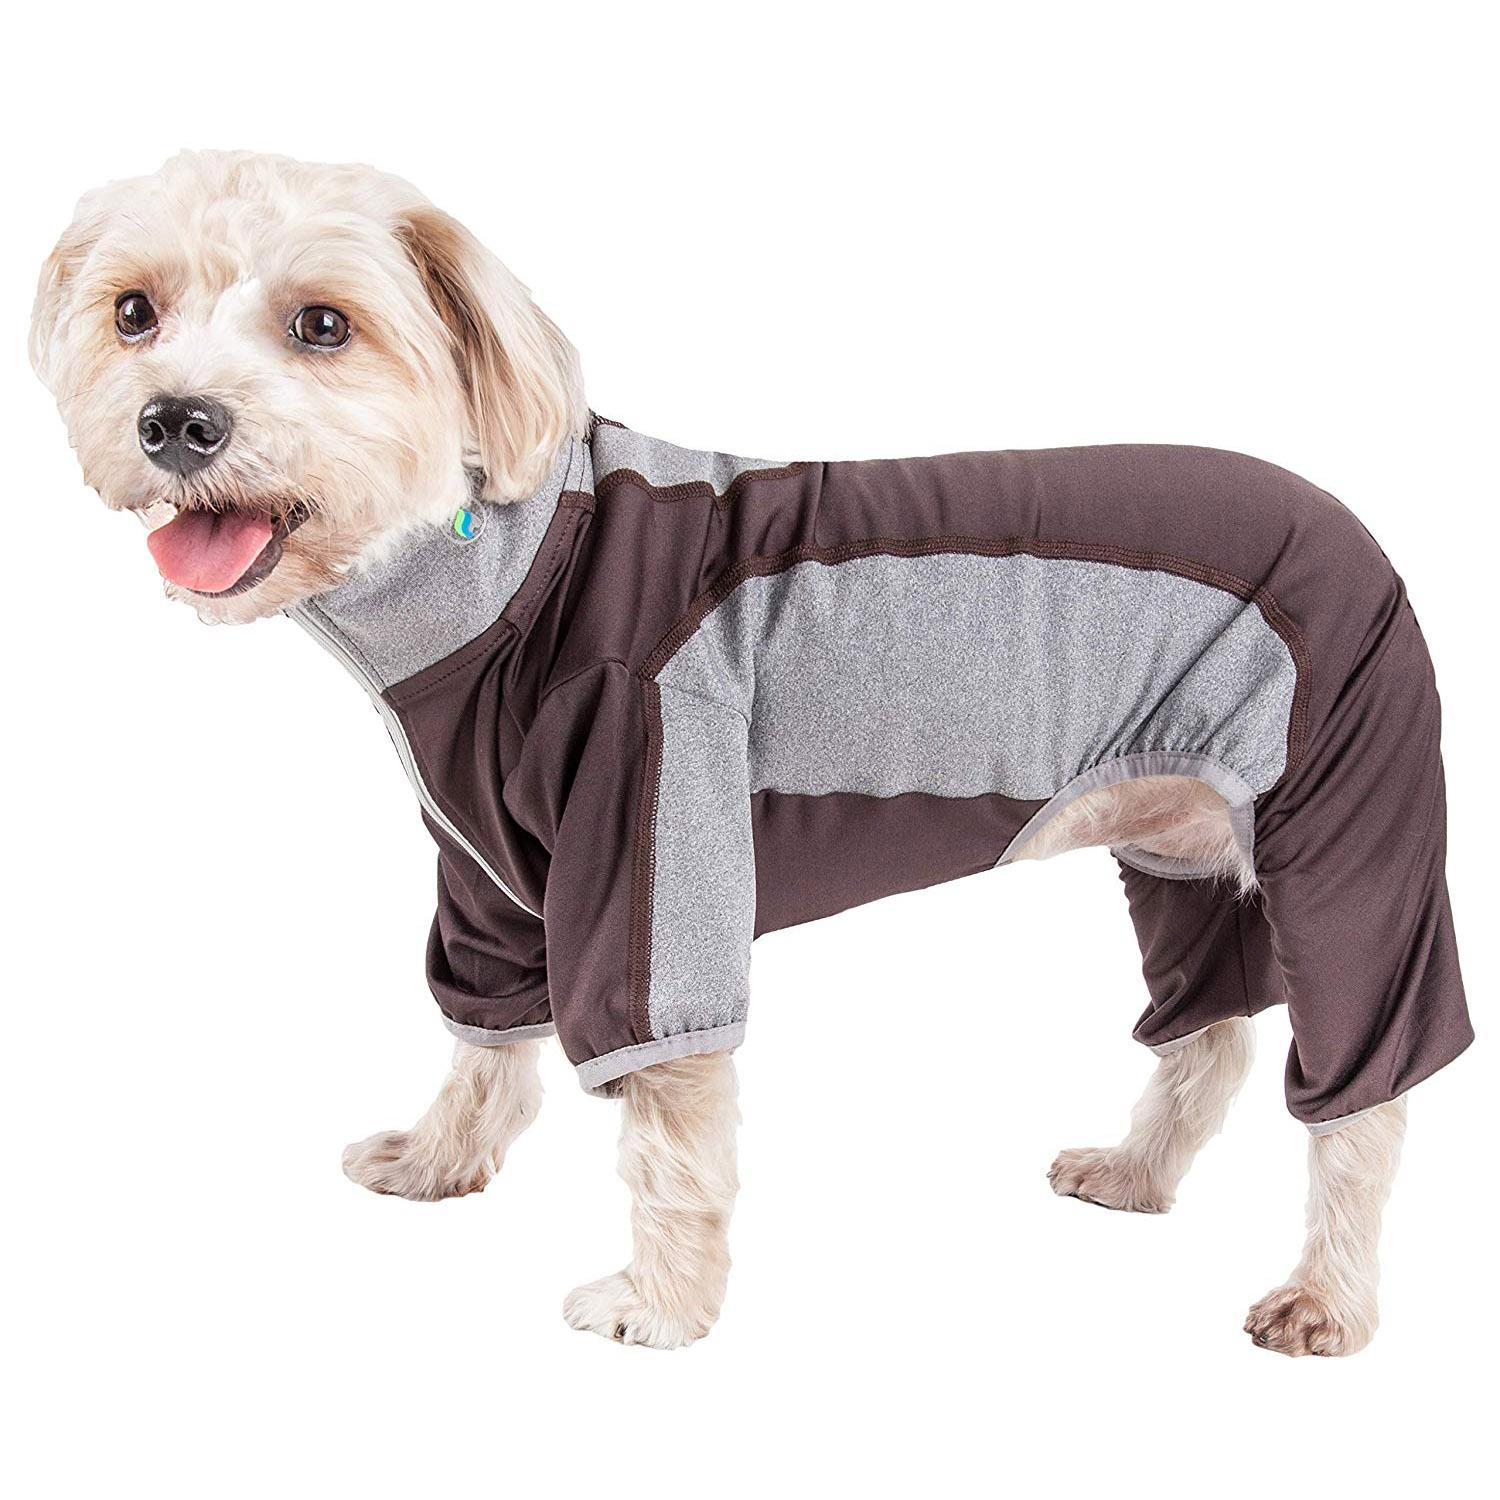 Pet Life ACTIVE 'Warm-Pup' Performance Jumpsuit - Brown and Gray